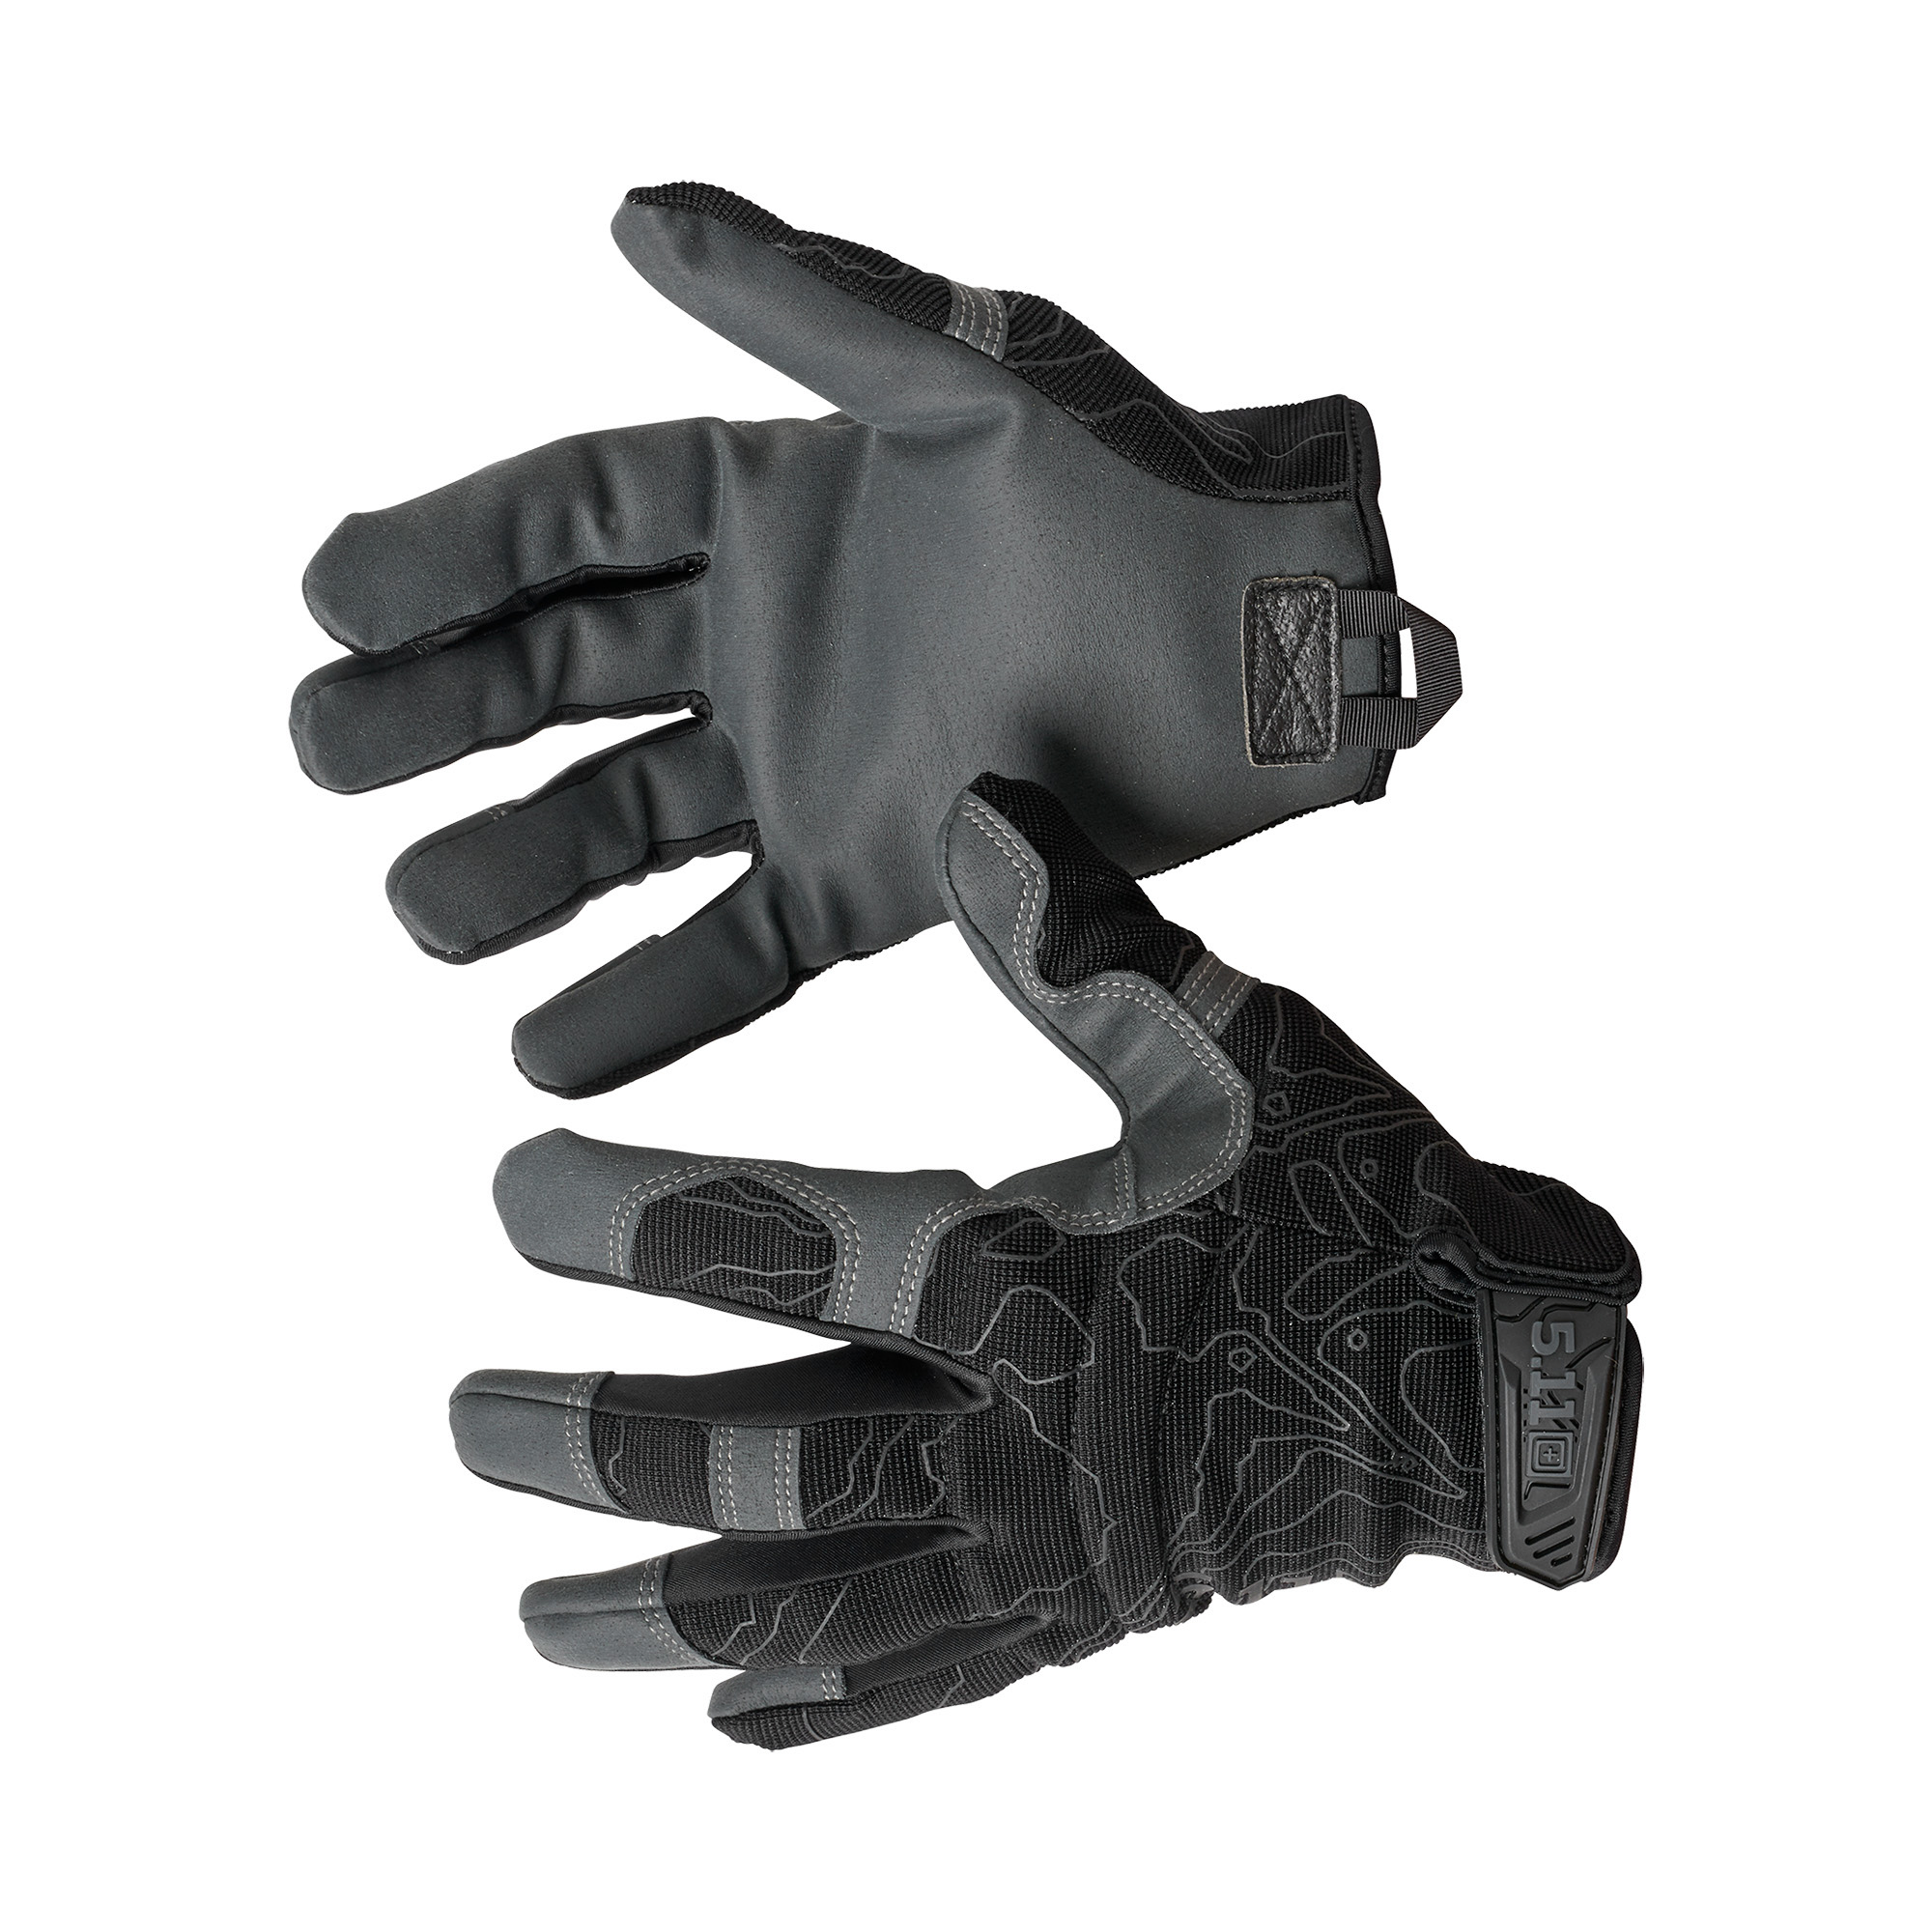 5.11 Tactical Men's High Abrasion Tactical Glove thumbnail